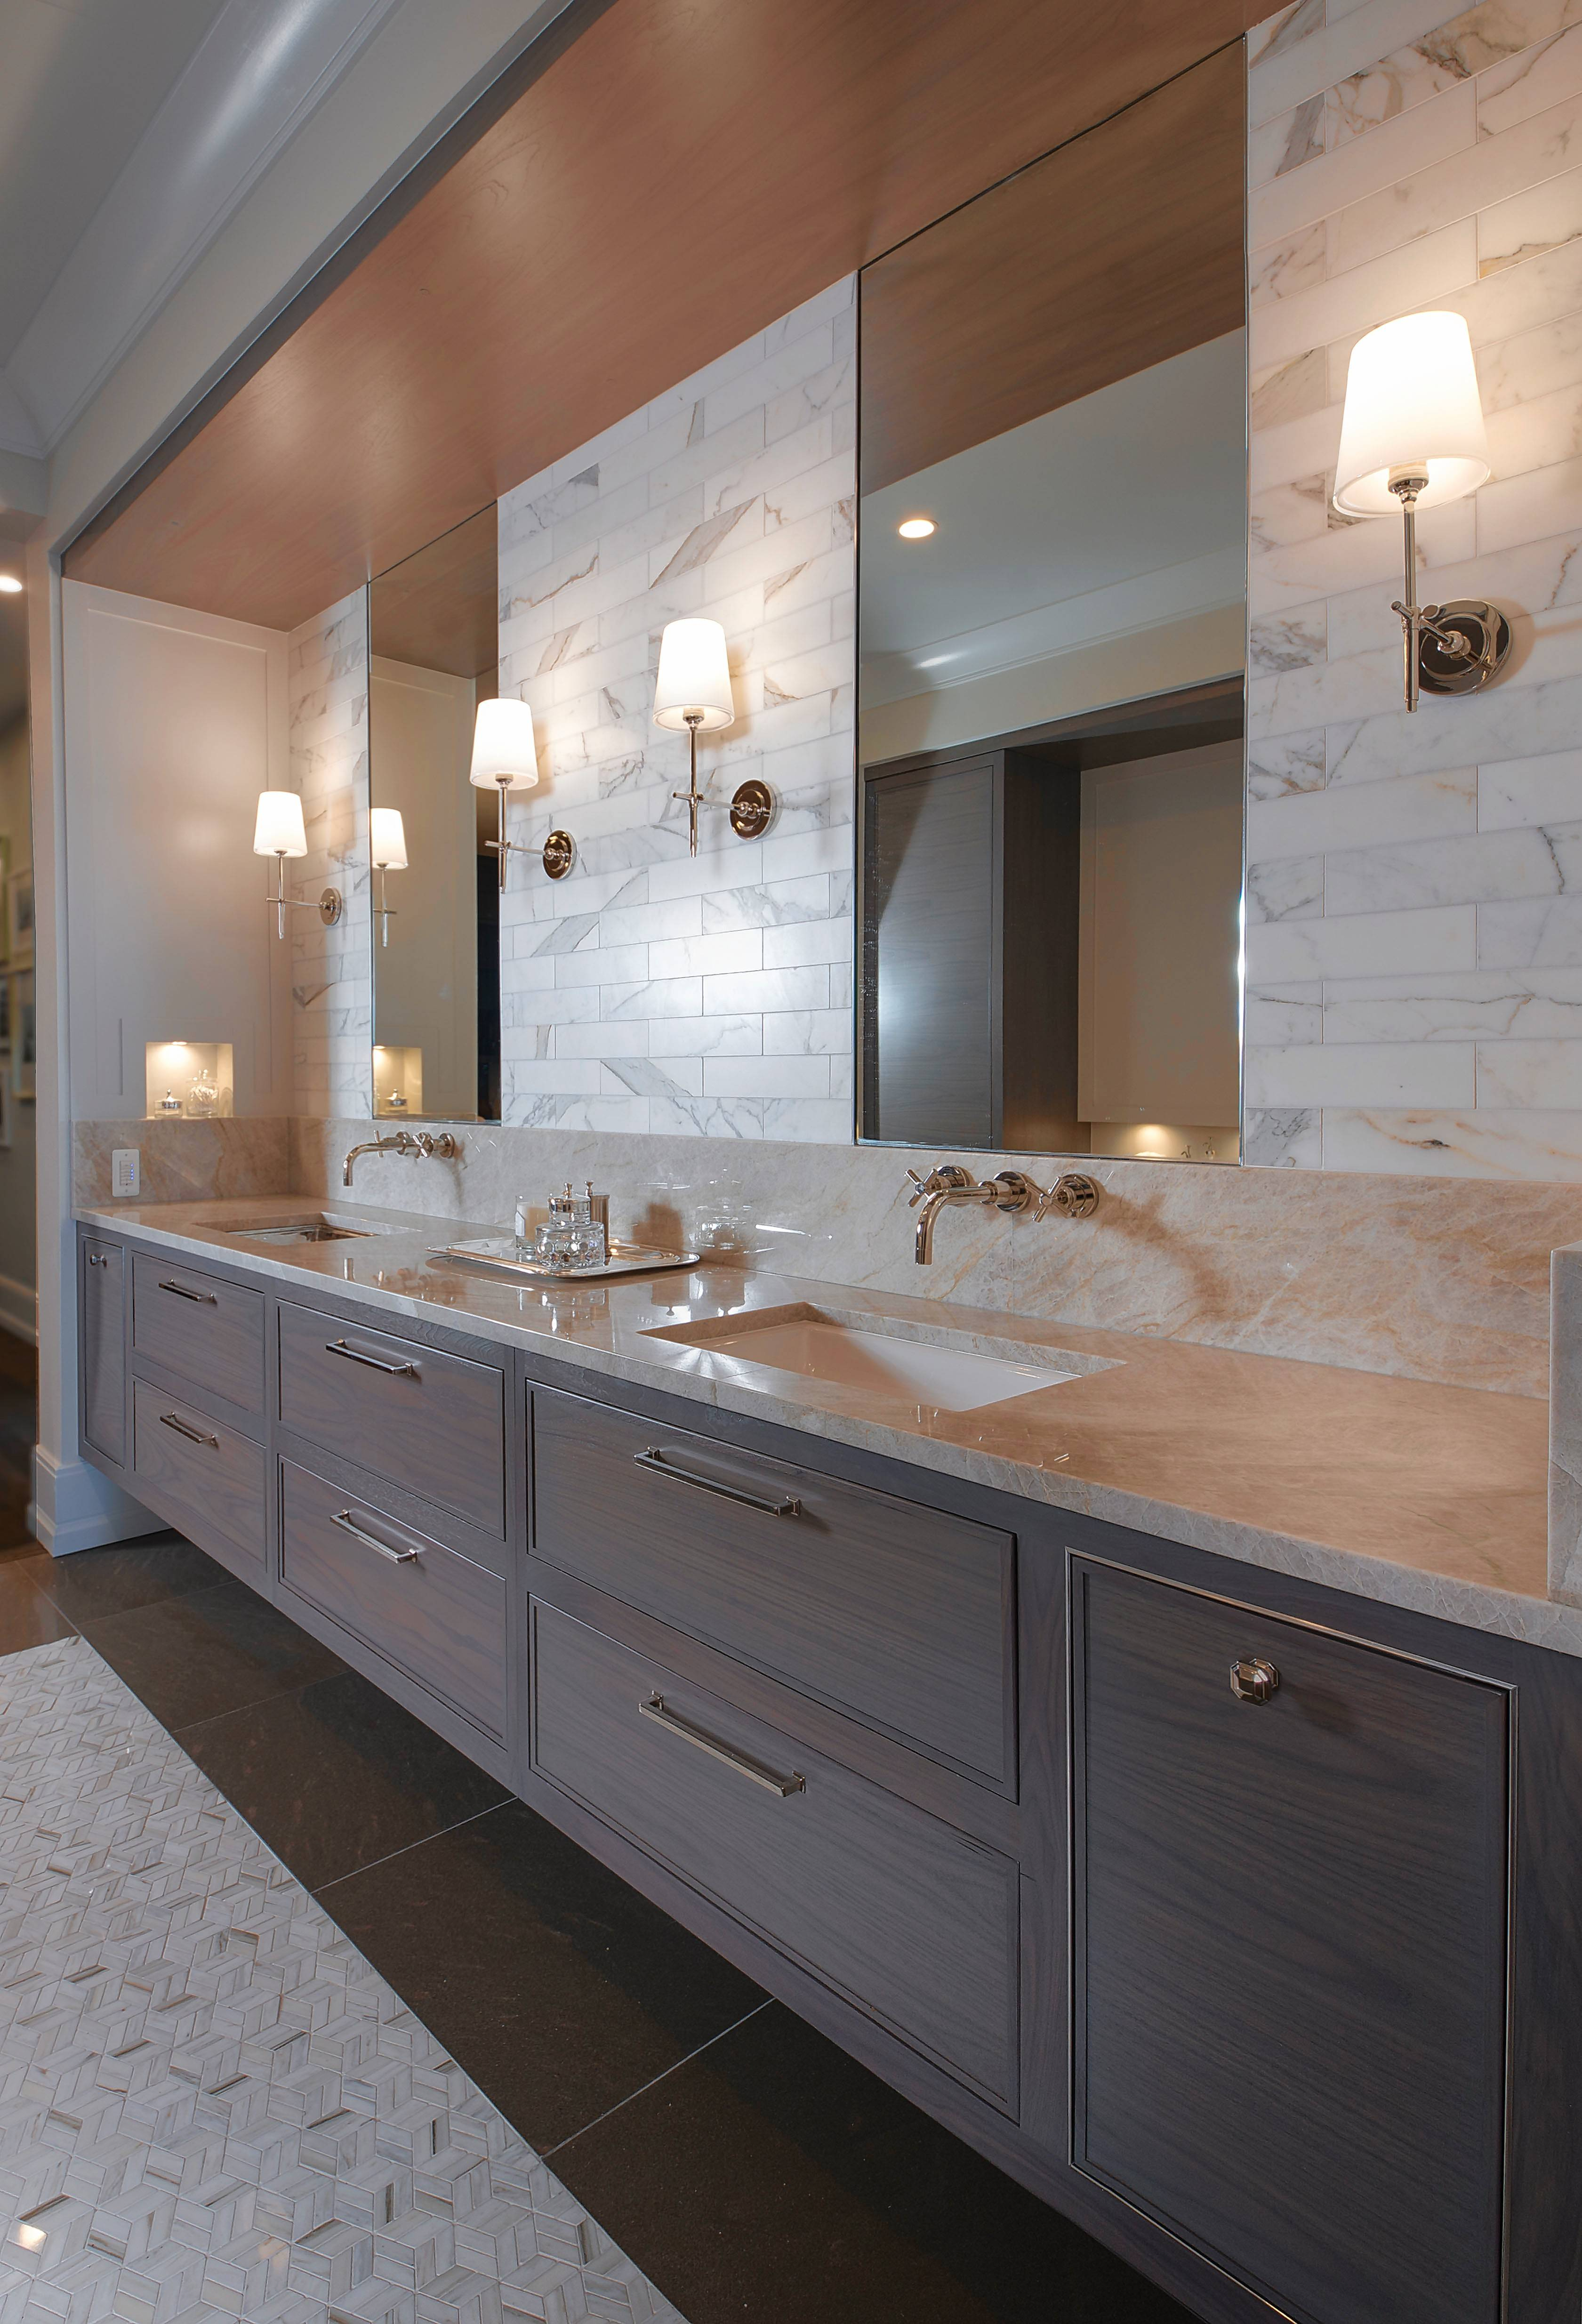 Over-the-mirror lighting, or bath bars, are rarely flattering for anyone. Instead, try installing sconces 60--68 inches off the floor on either side of a mirror for better lighting and a more sophisticated look.